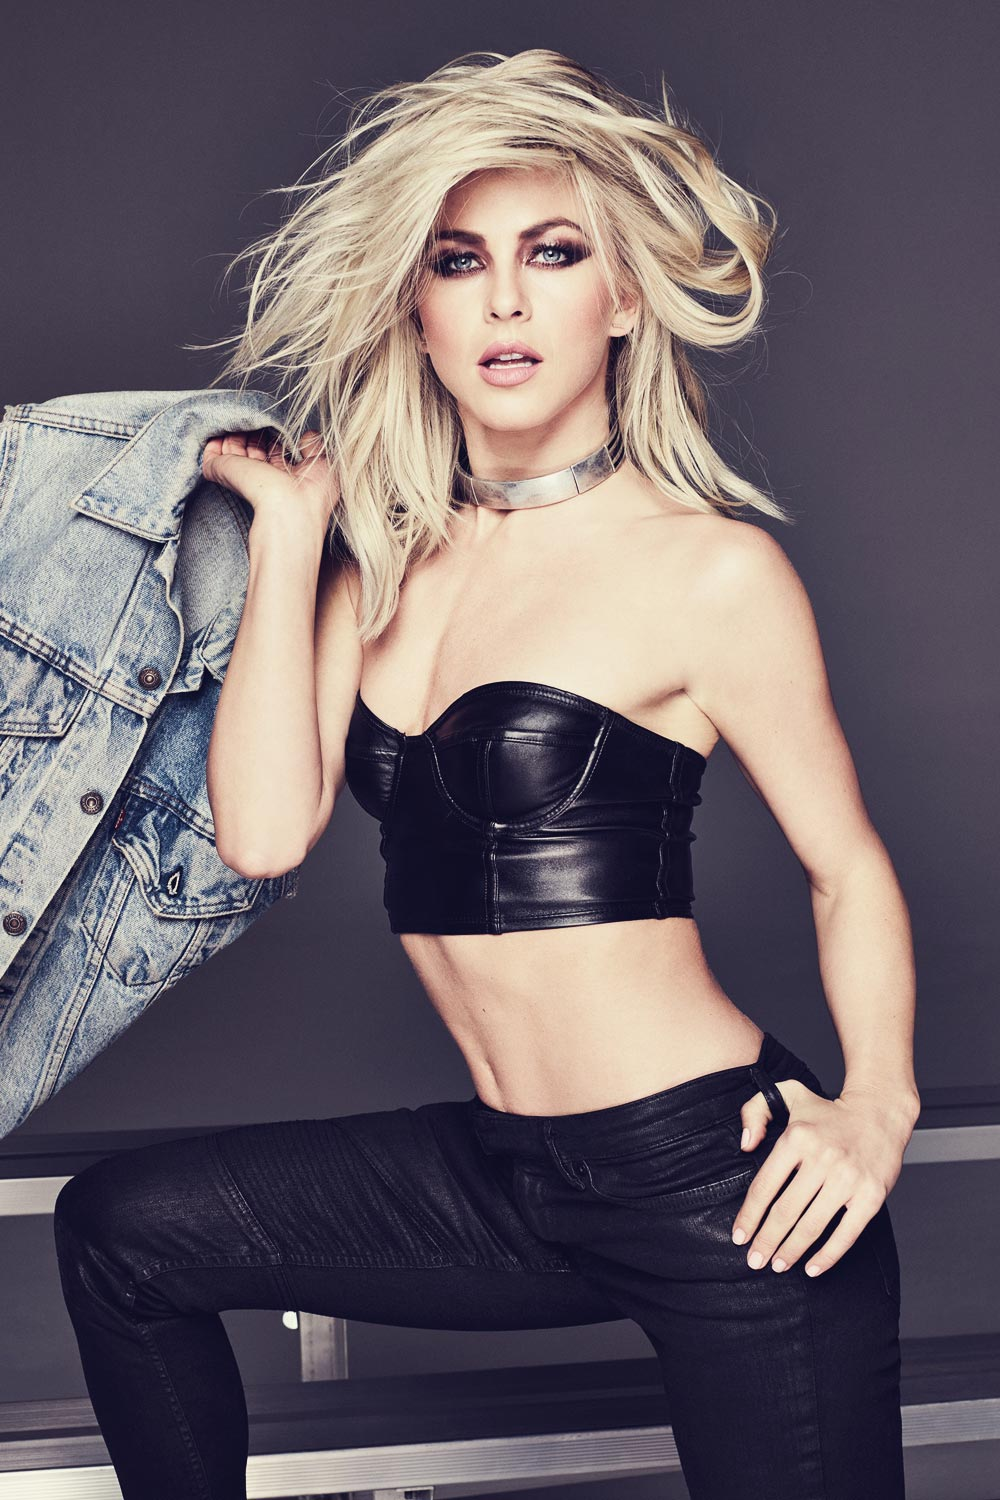 Julianne Hough photoshoot for Billboard